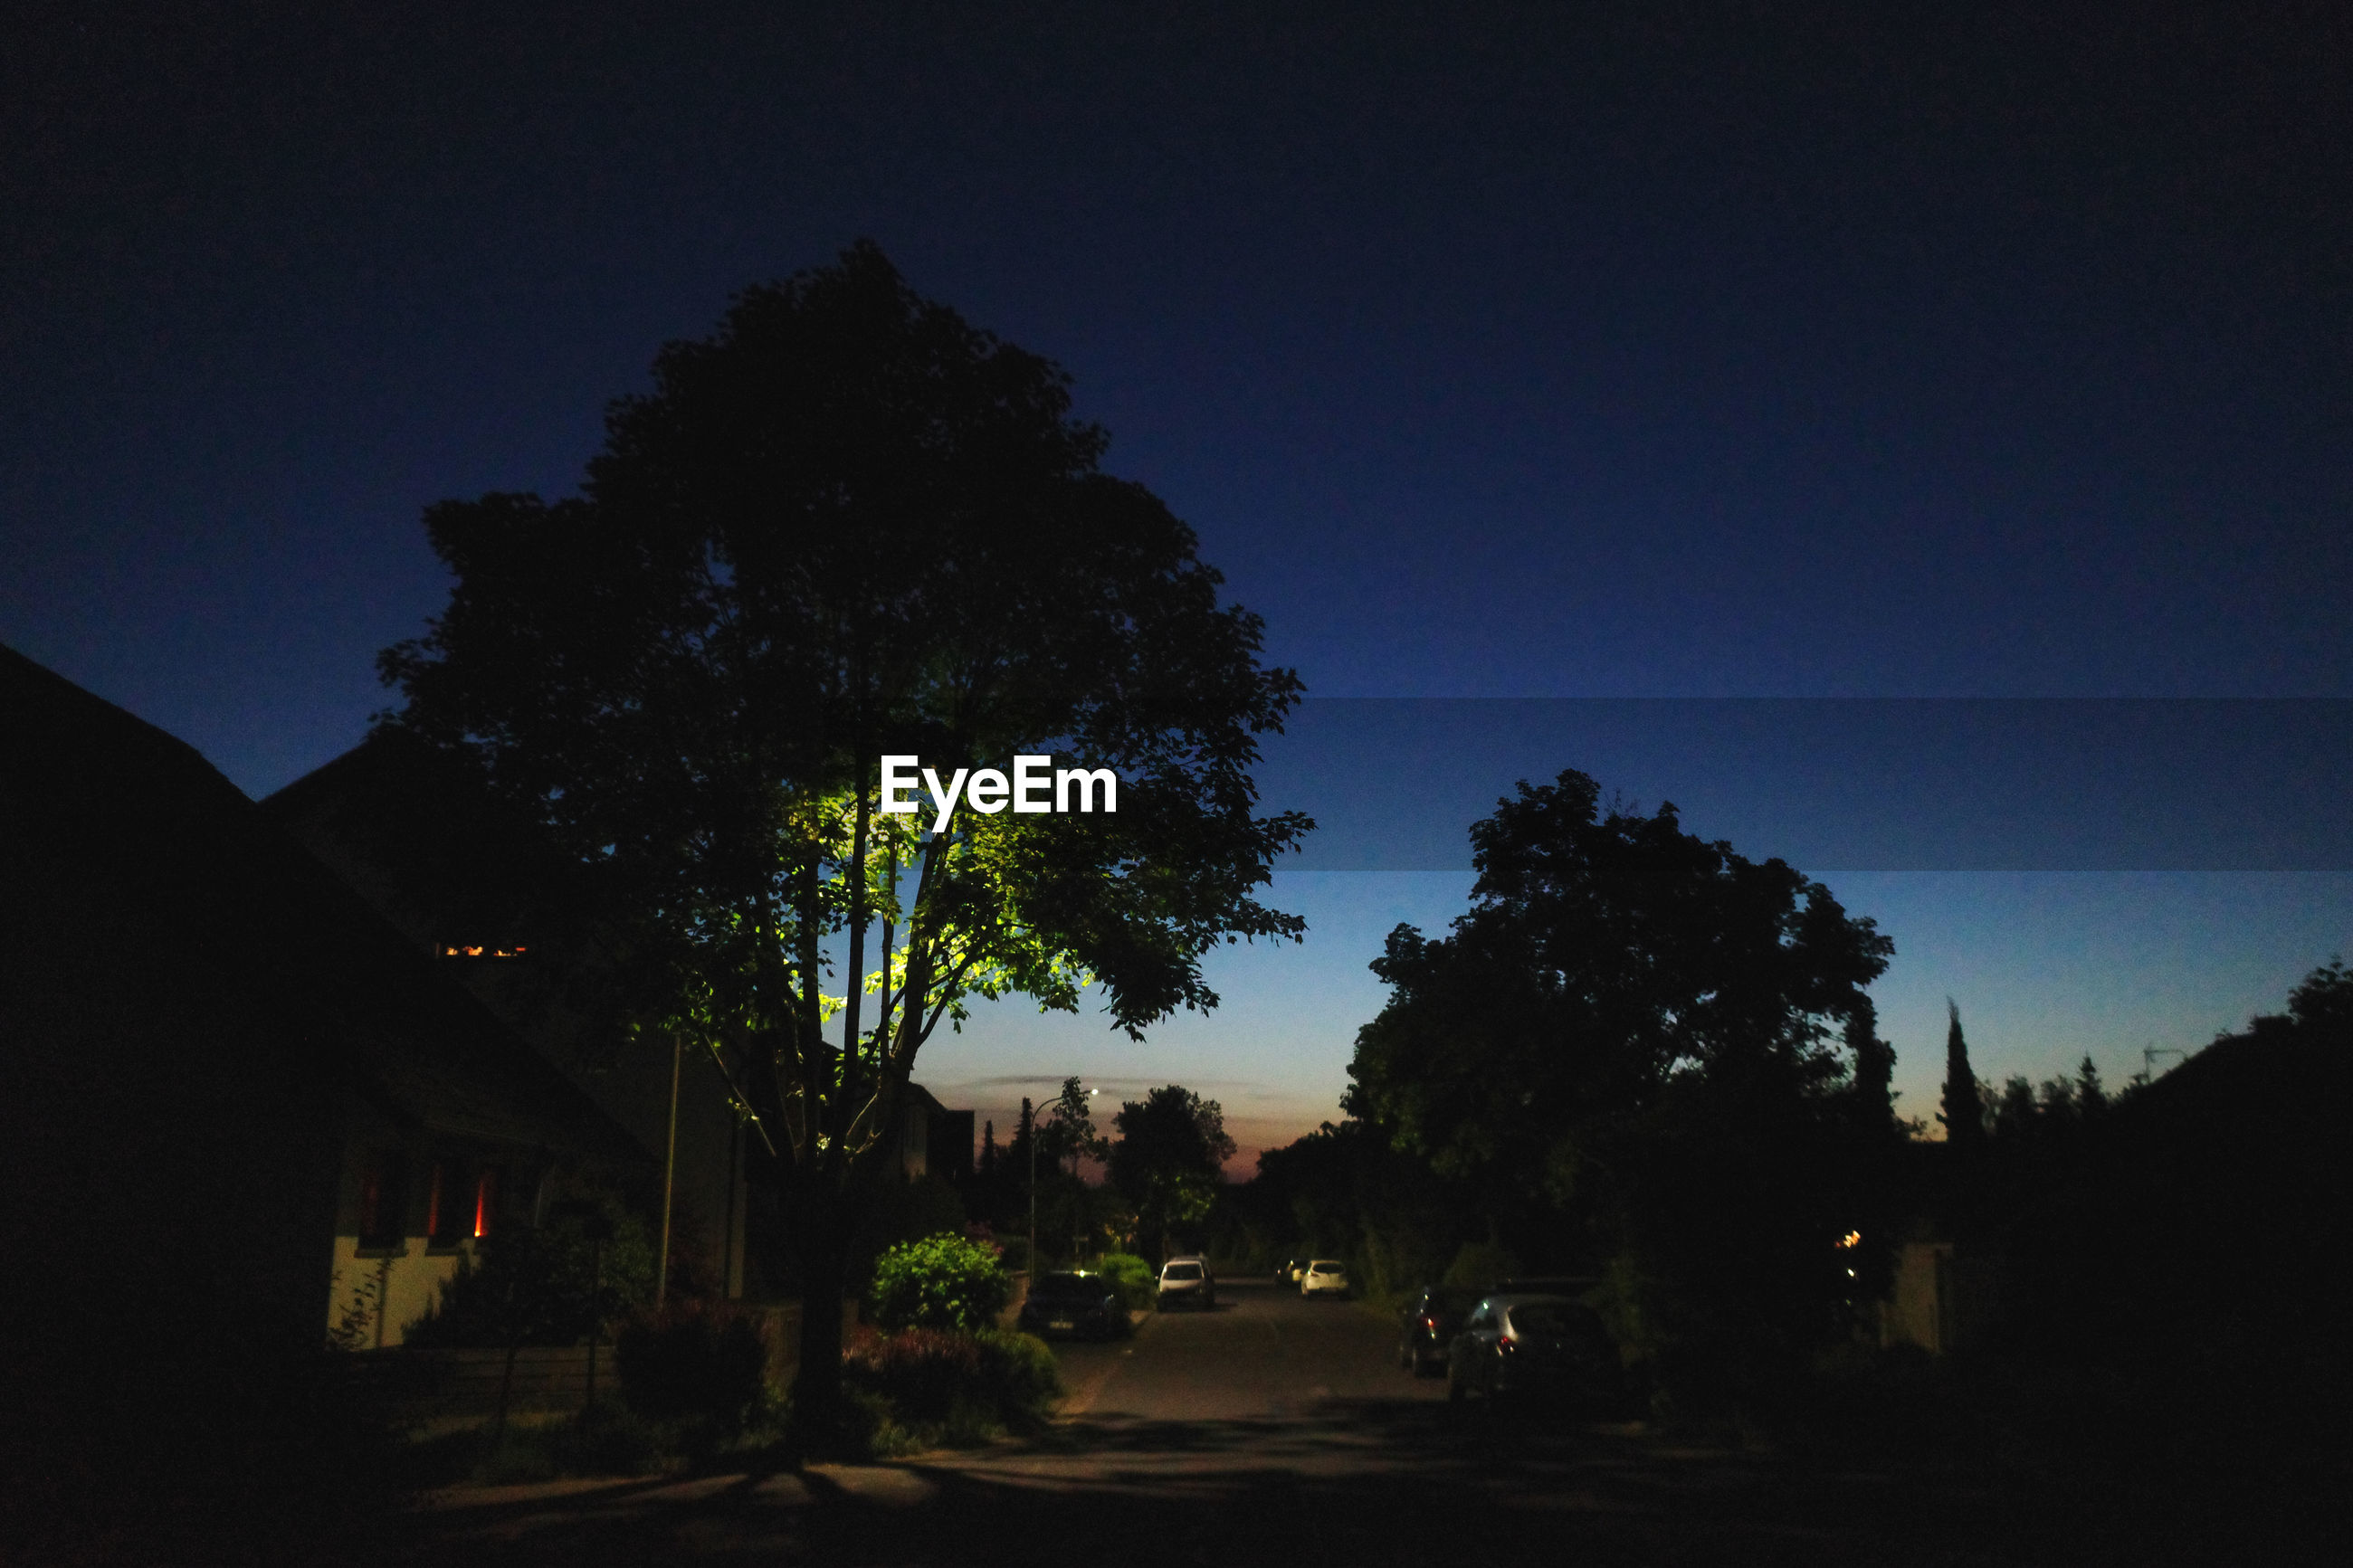 SILHOUETTE TREES AND BUILDINGS AGAINST SKY AT NIGHT